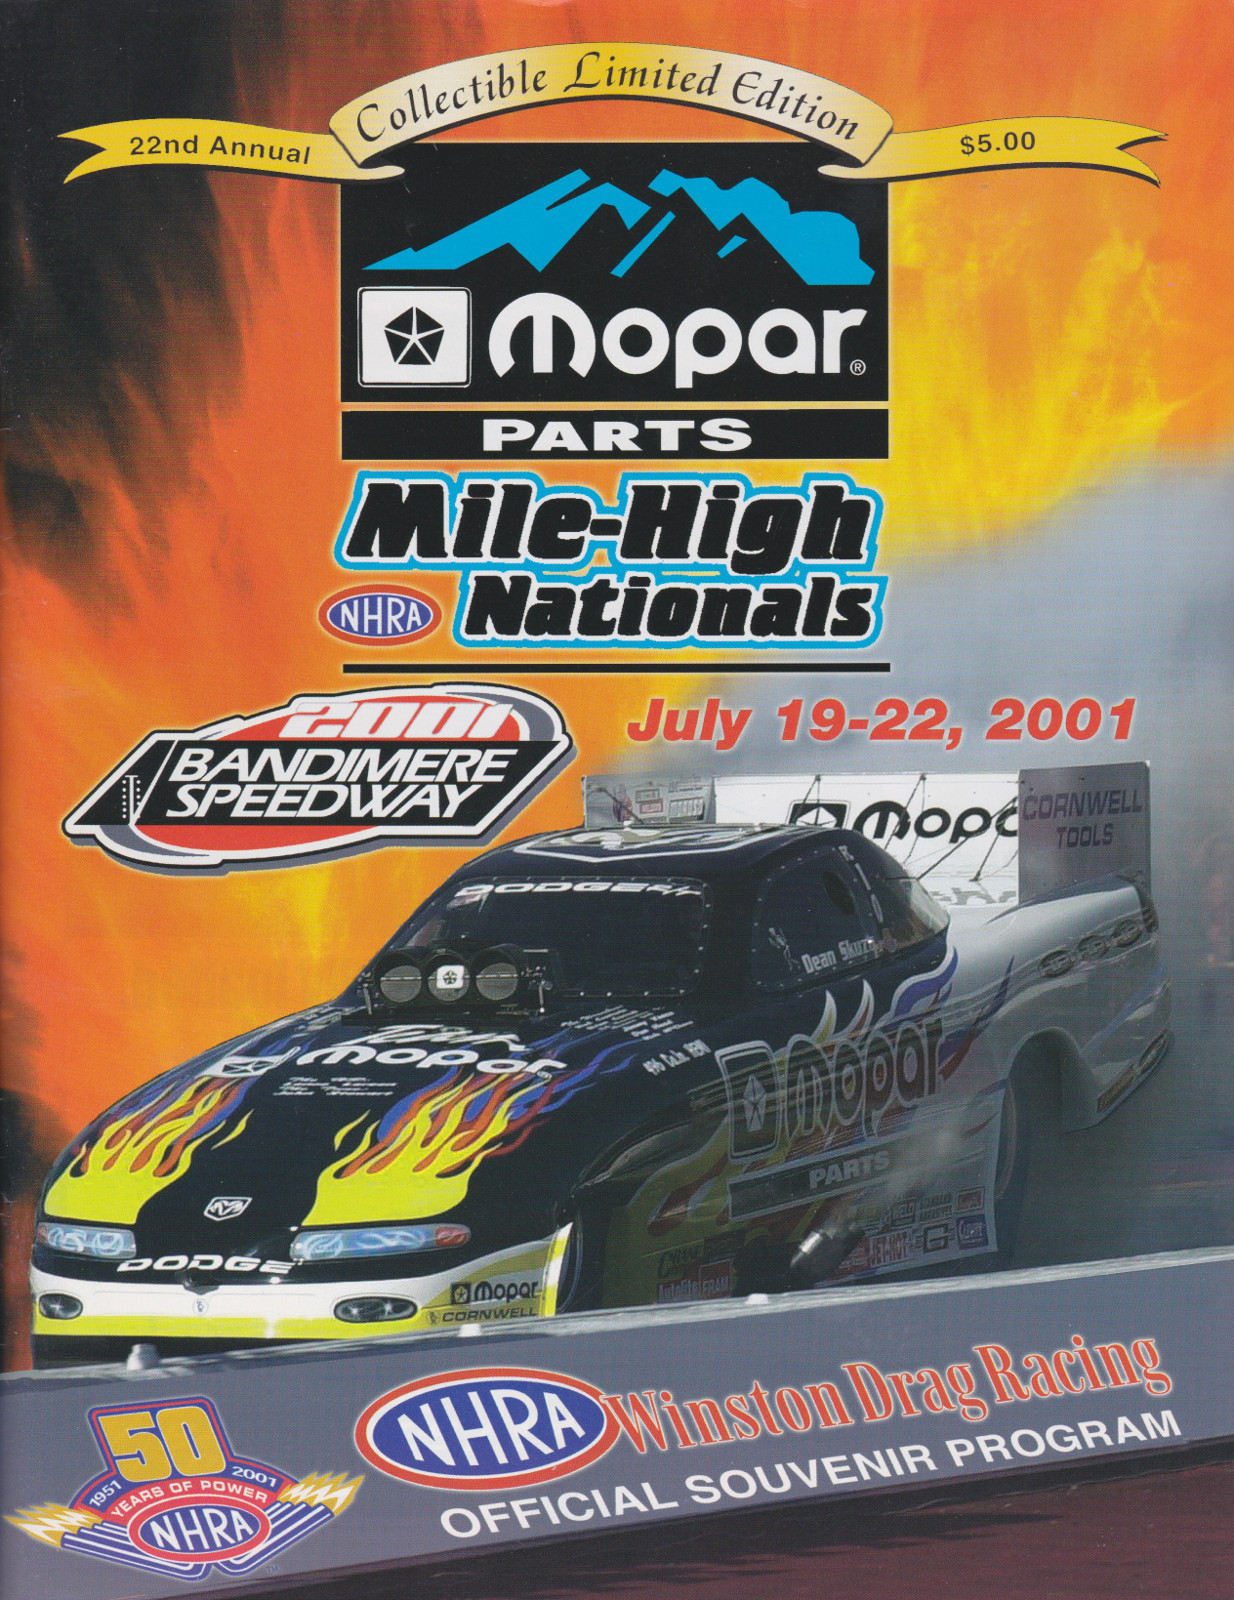 Bandimere Speedway   The Motor Racing Programme Covers Project